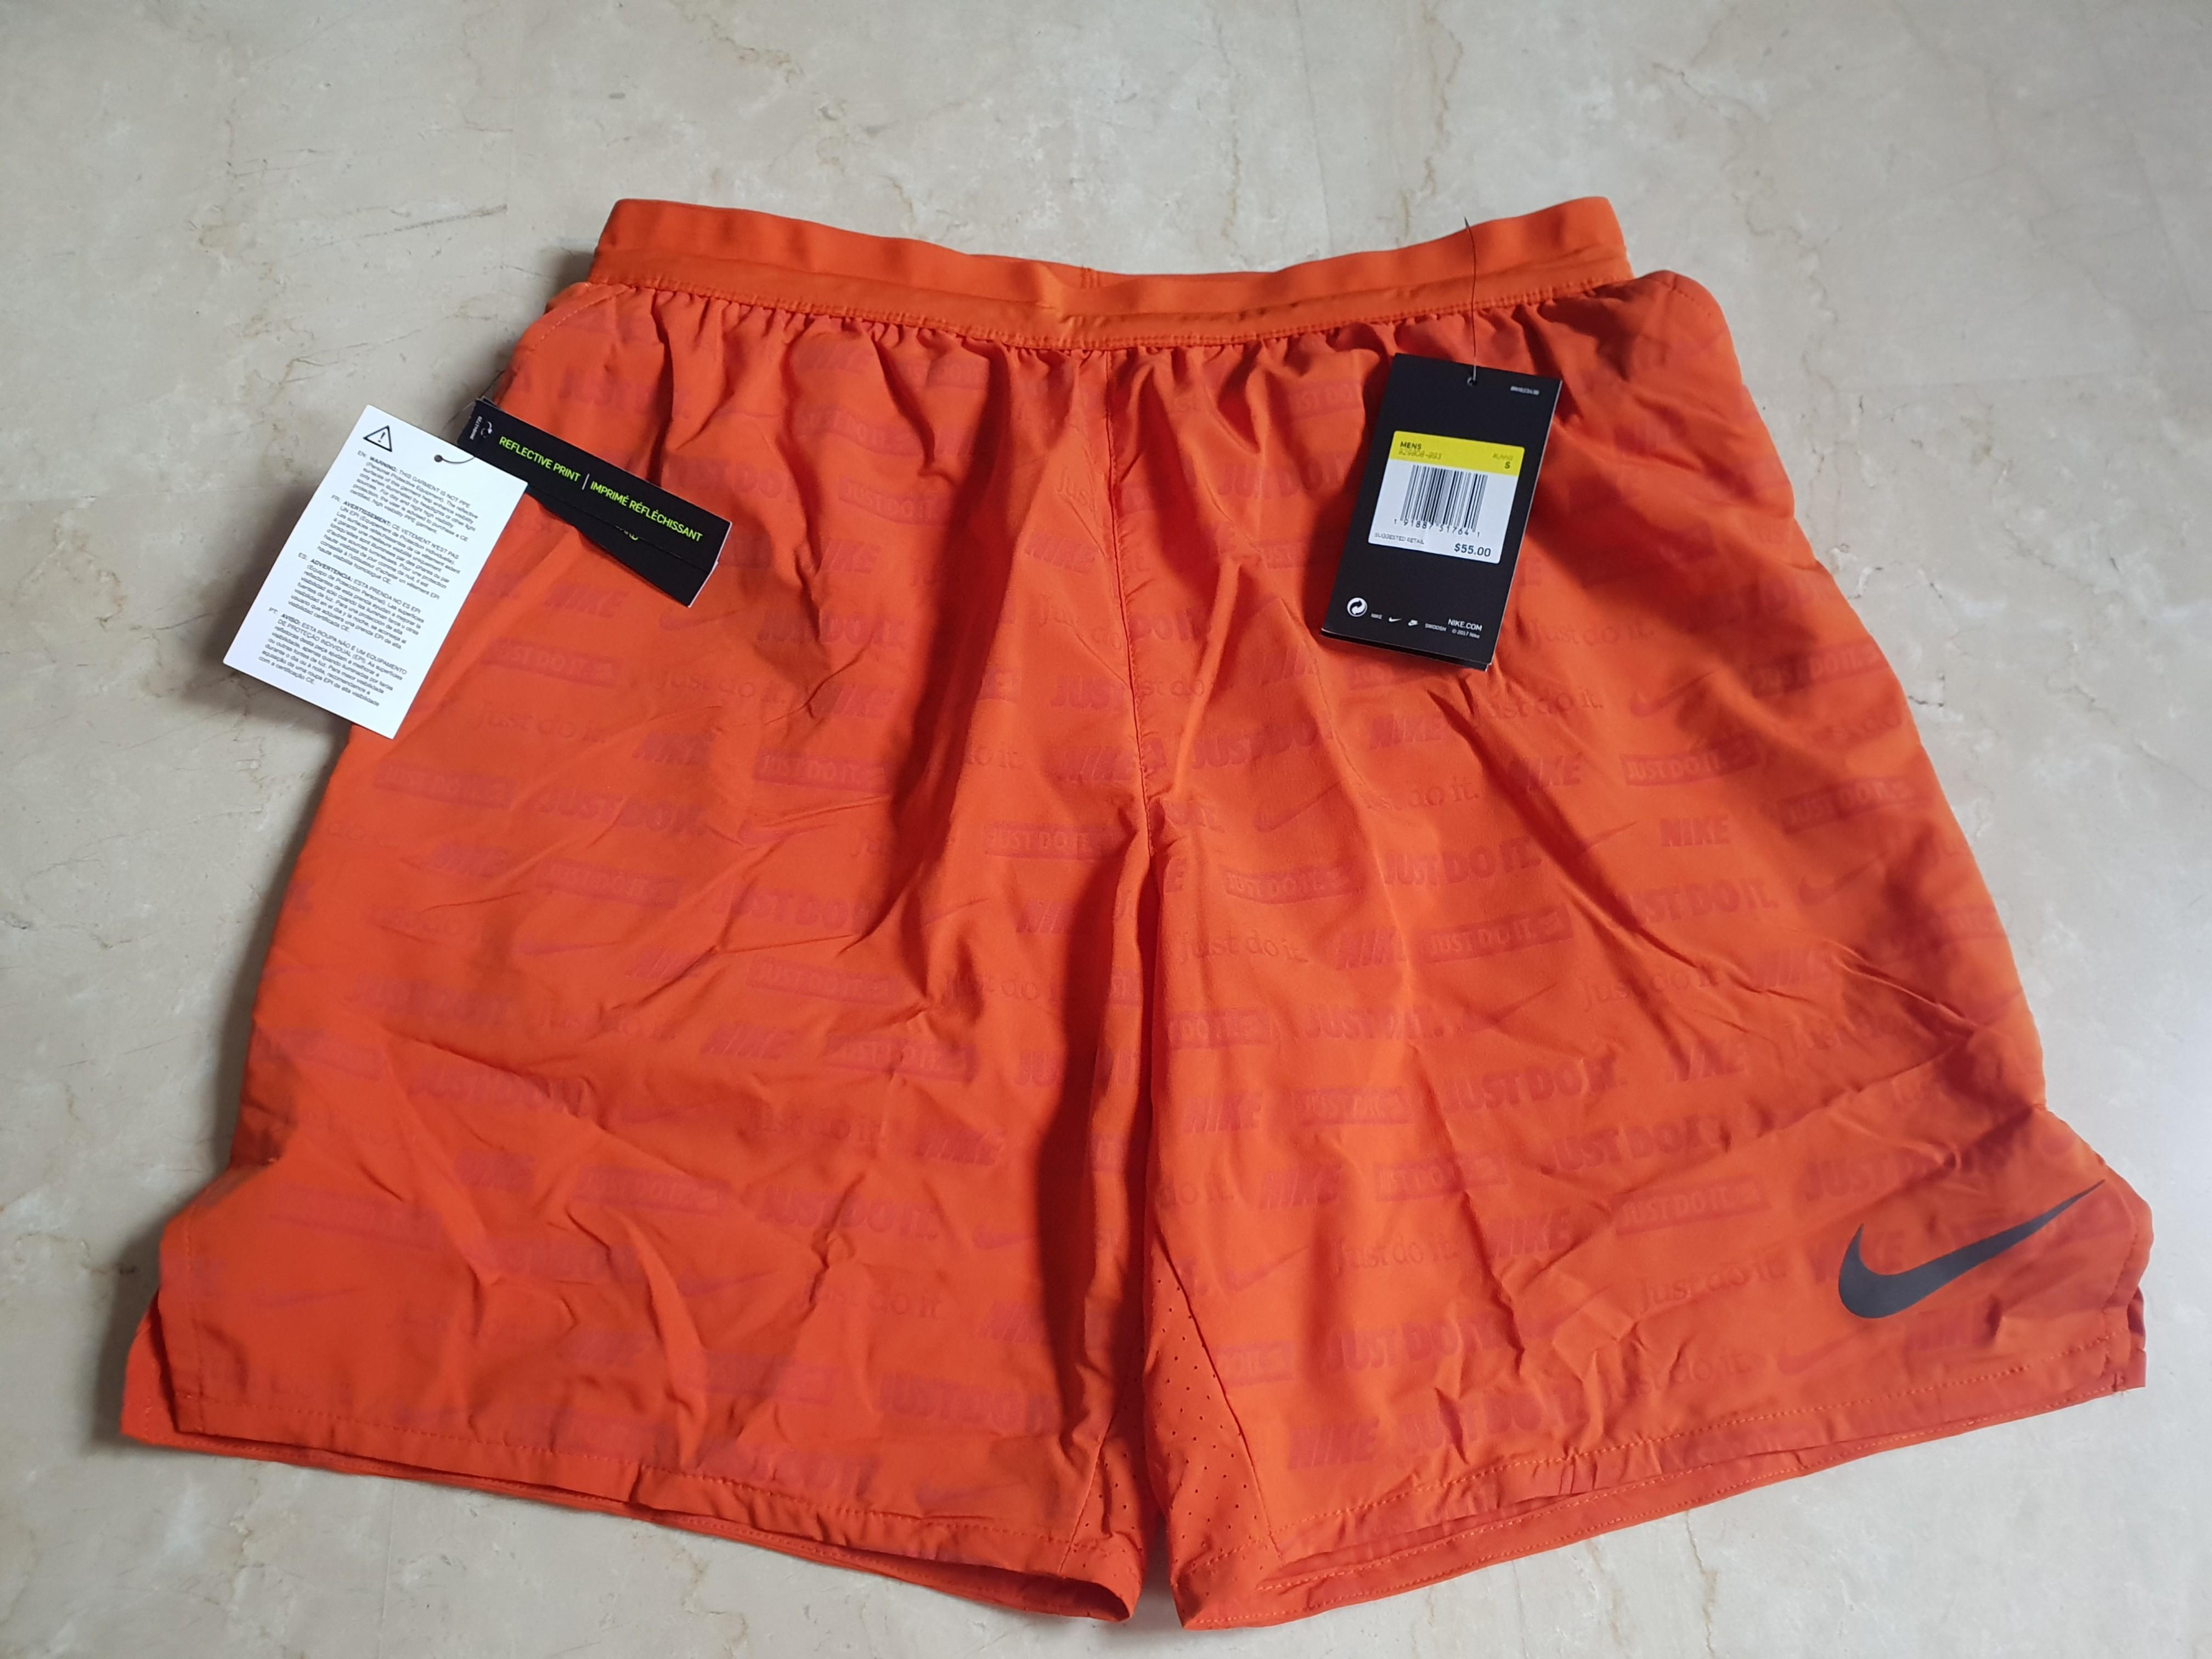 75121ca8 Nike Men's Running Shorts, Sports, Sports Apparel on Carousell